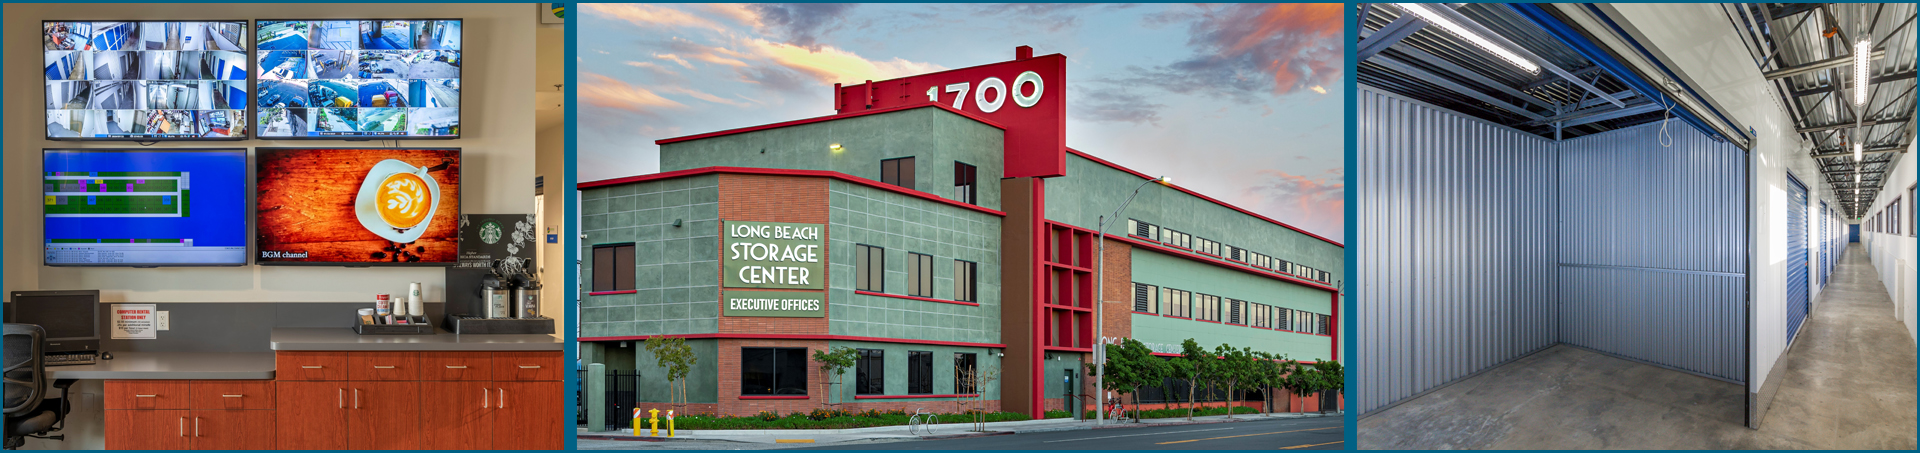 Mini Self Storage In Long Beach Ca With Long Beach Storage Center